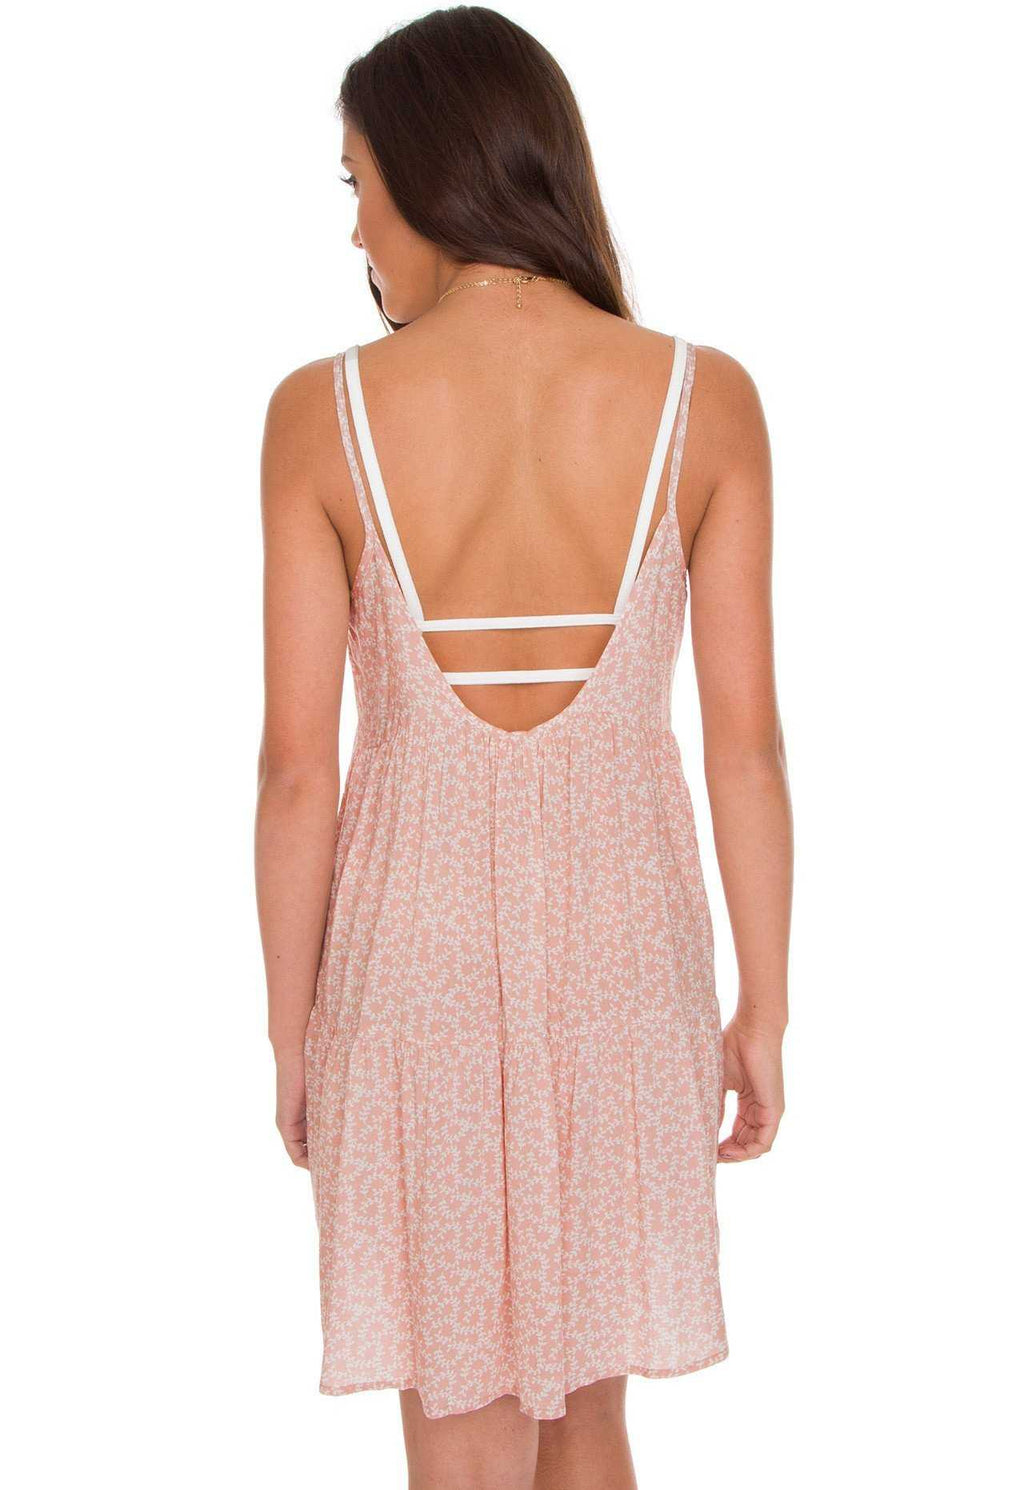 Dresses - Bri Floral Dress In Rose